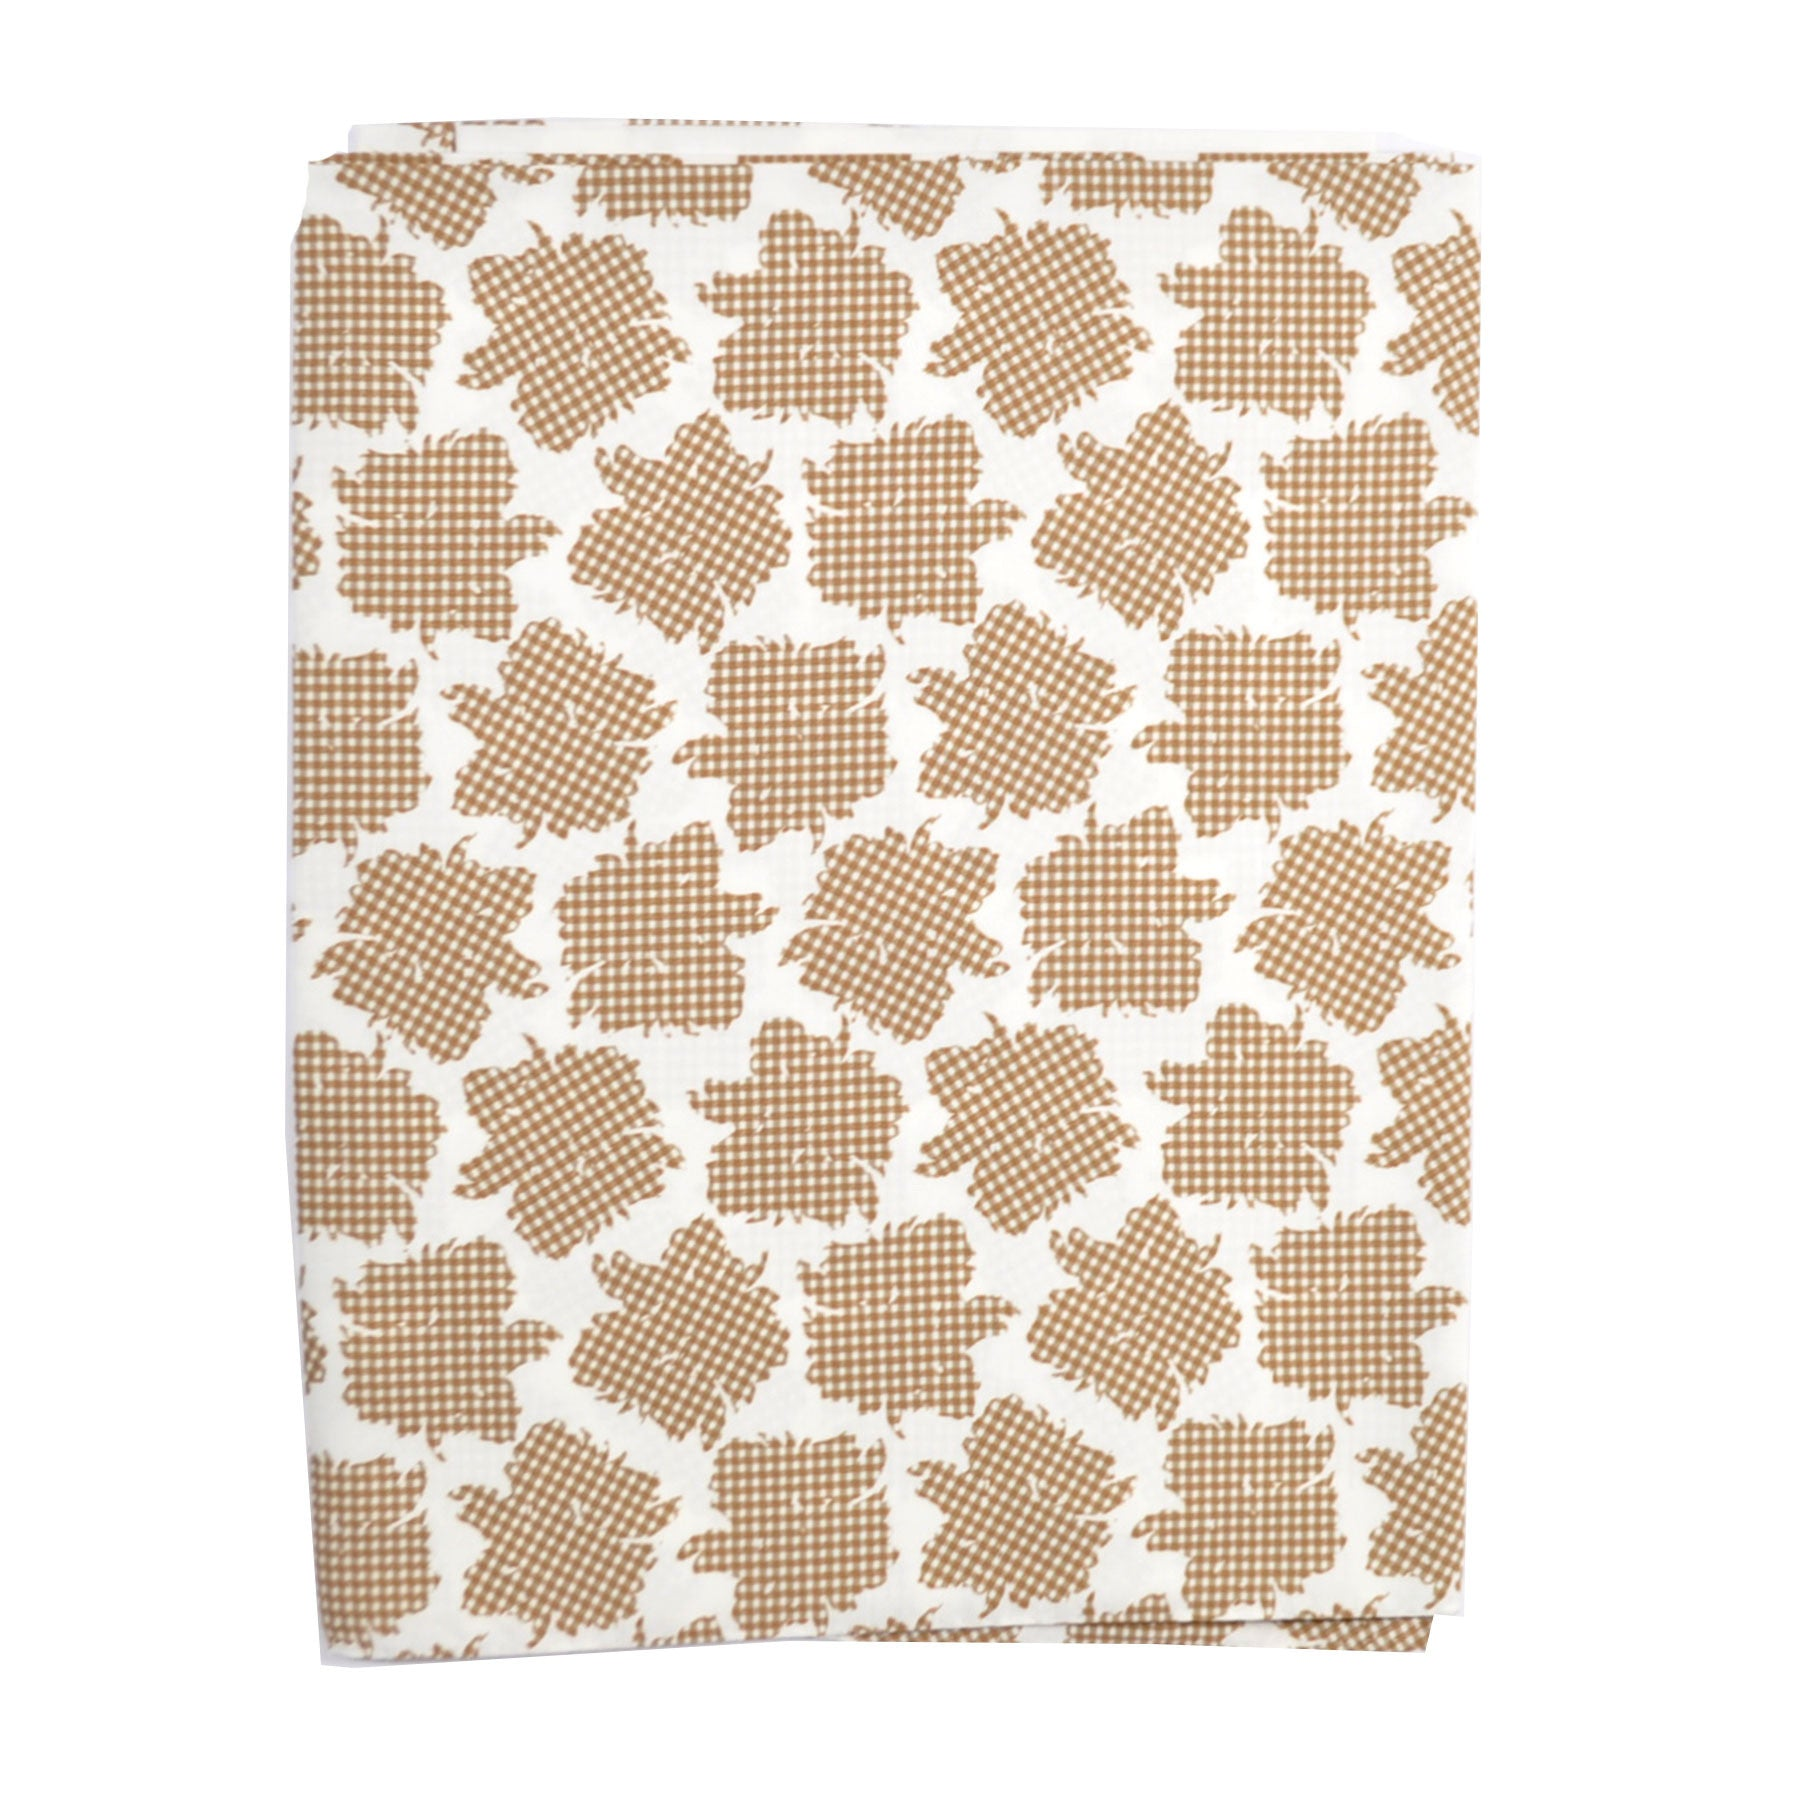 Agnona Scarf White Cream Check Floral Short Shawl - FINAL SALE